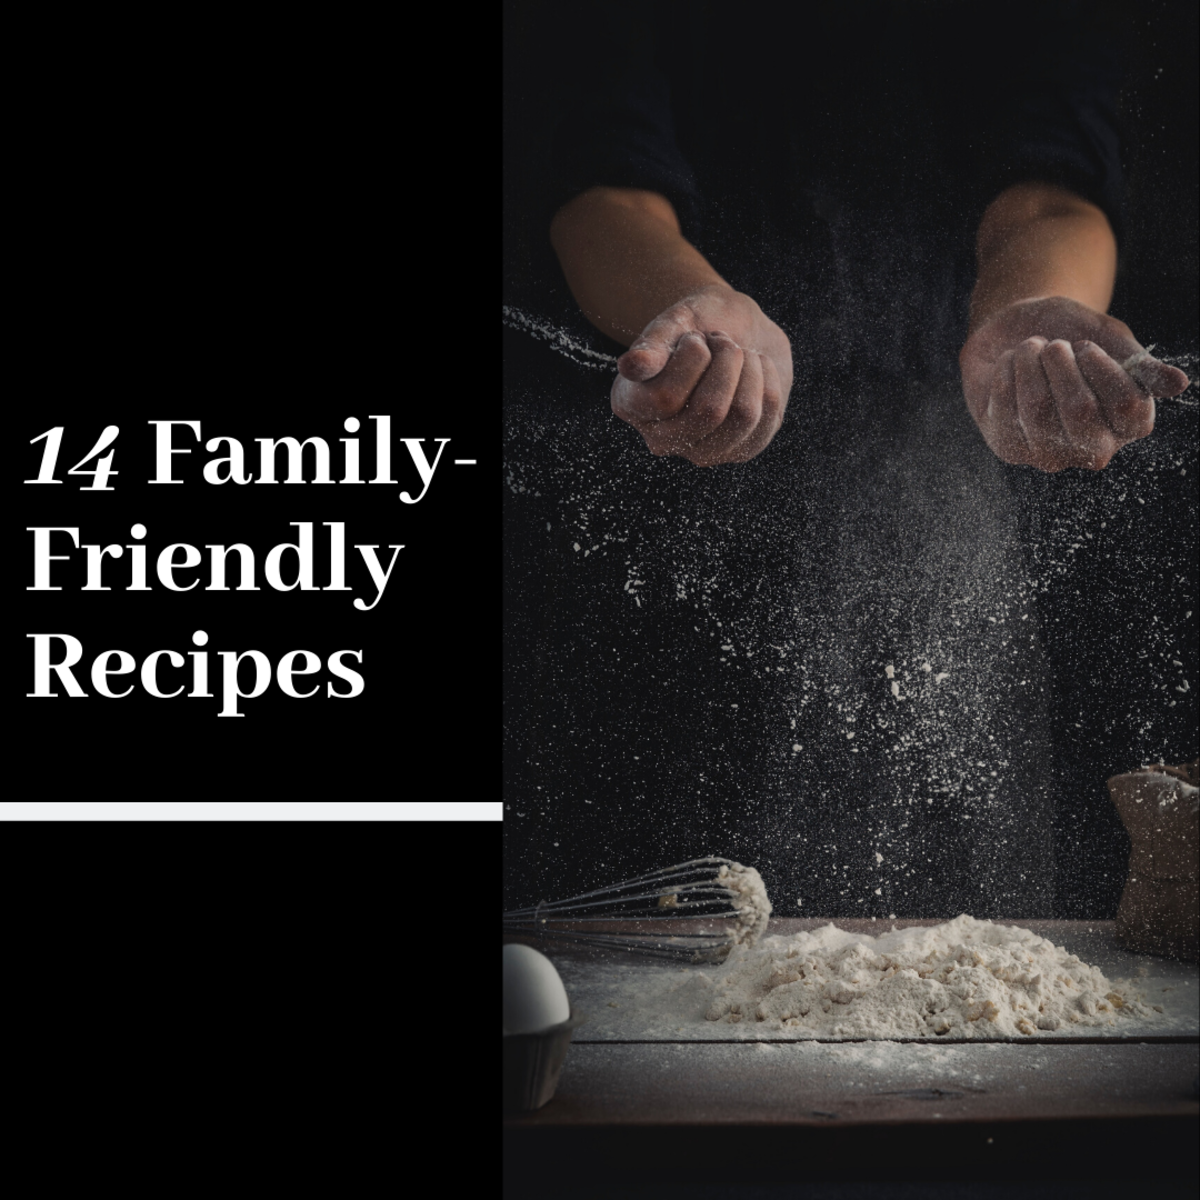 14 Frugal and Healthy Family-Friendly Recipes From Scratch